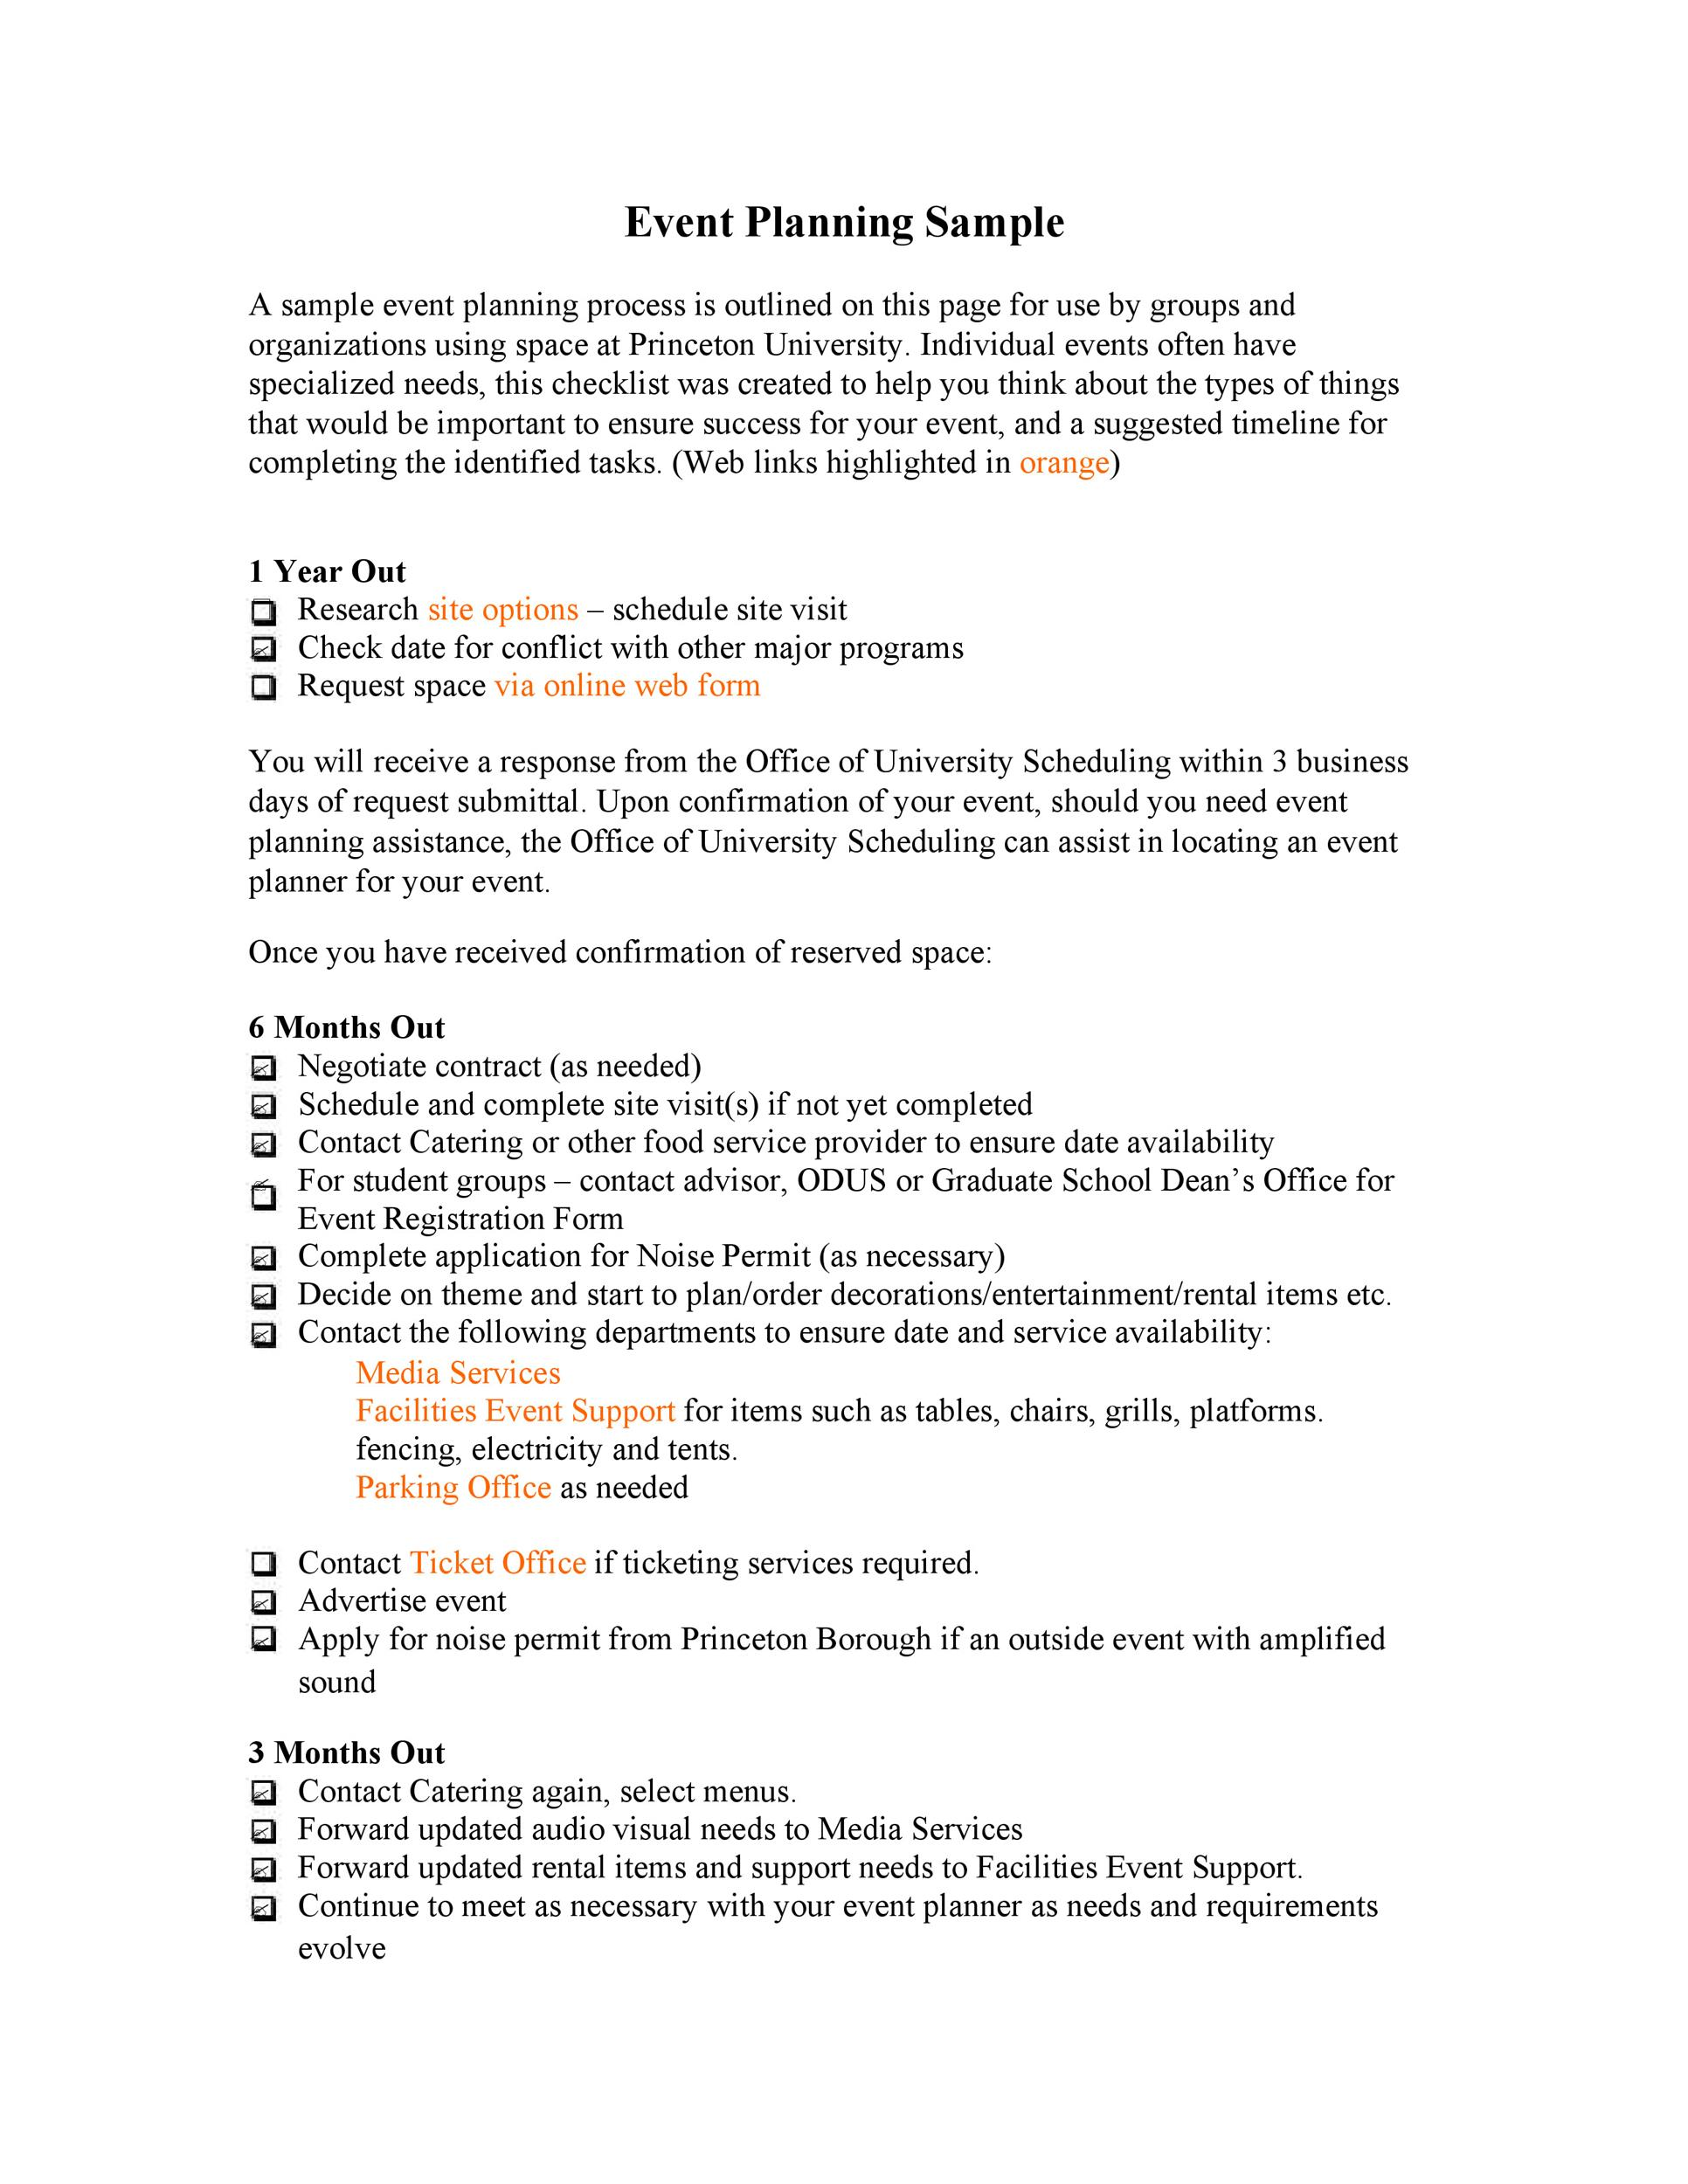 Professional Event Planning Checklist Templates Template Lab - Event planning timeline template